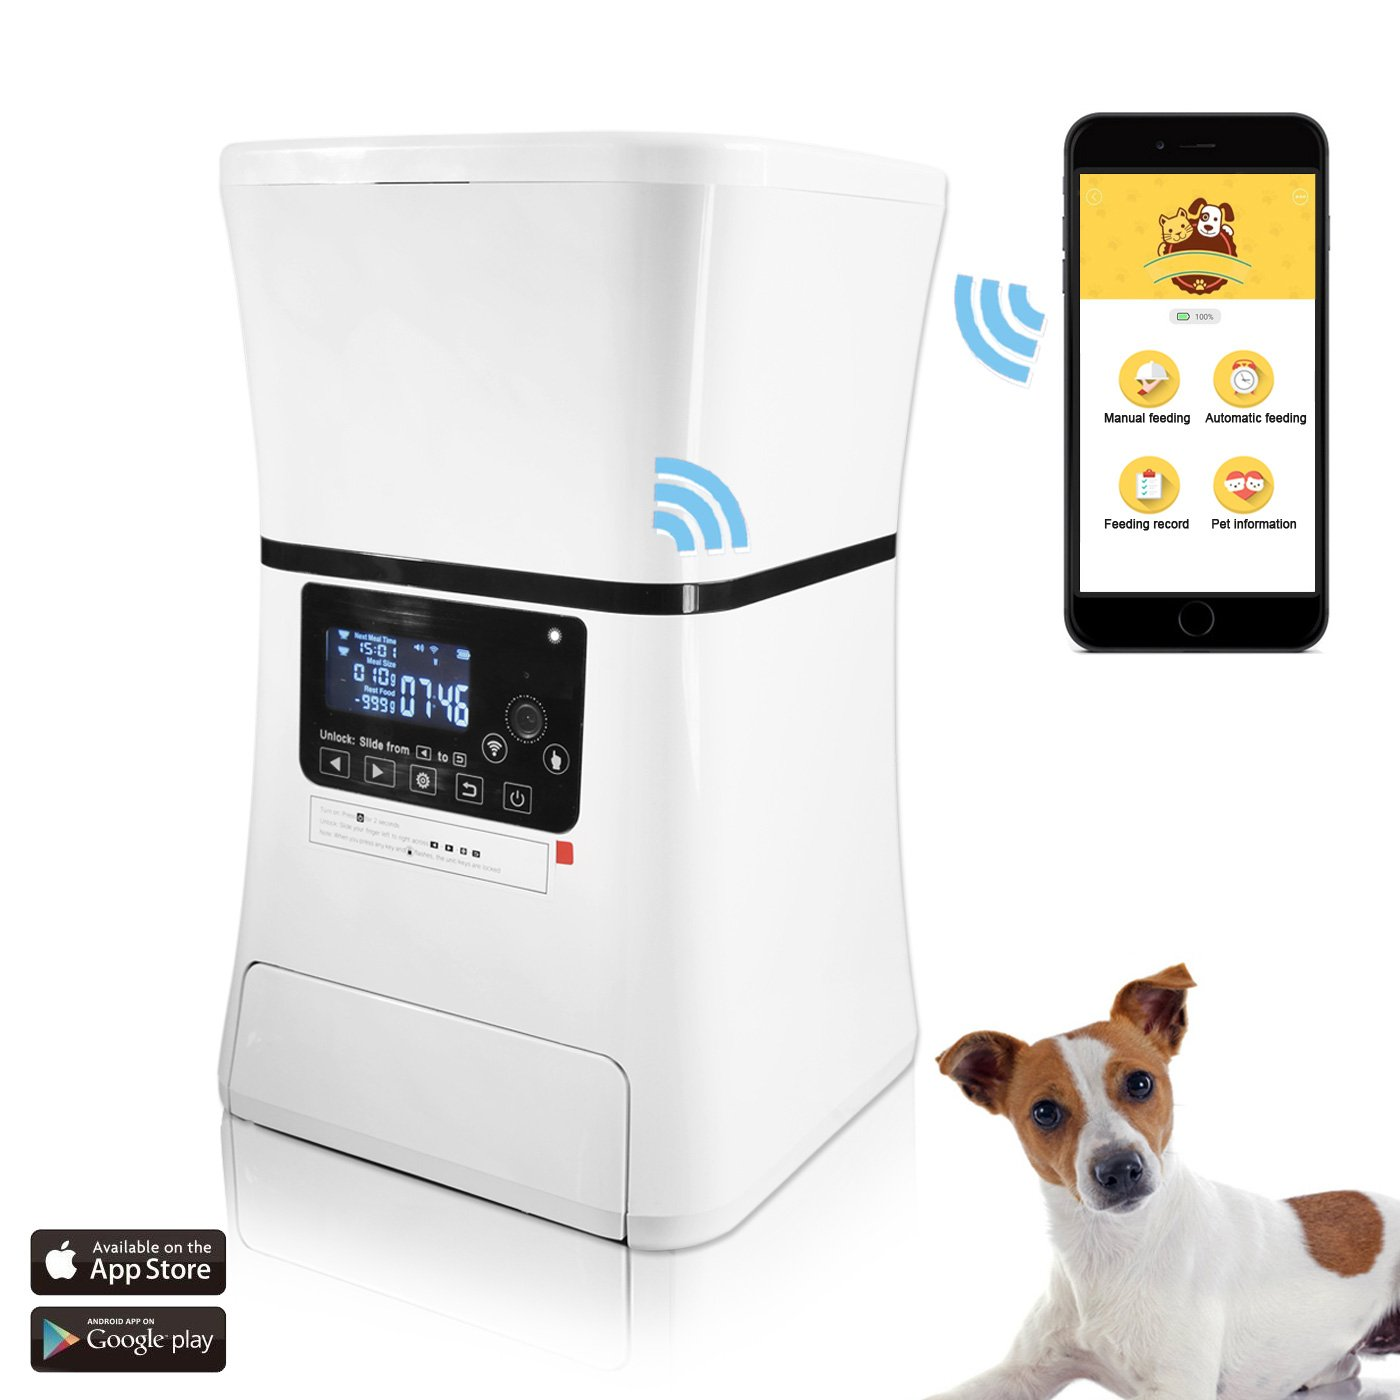 Automatic Pet Feeder, Smart Programmable Food Dispenser for Dog & Cat. For Dry & Wet Food. With IOS & Android APP, 6 lb Capacity